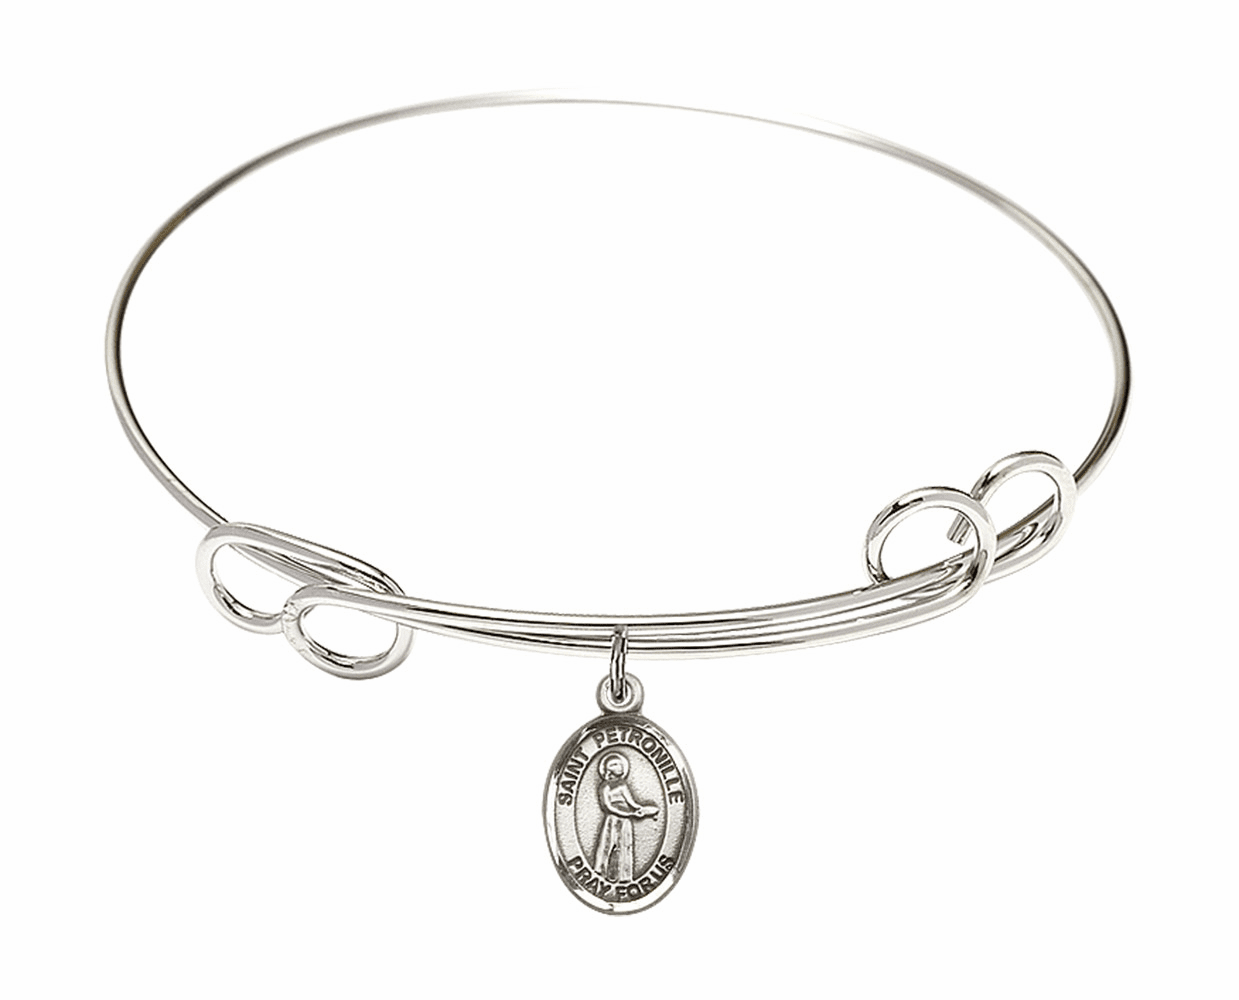 Round Loop St Petronille Bangle Charm Bracelet by Bliss